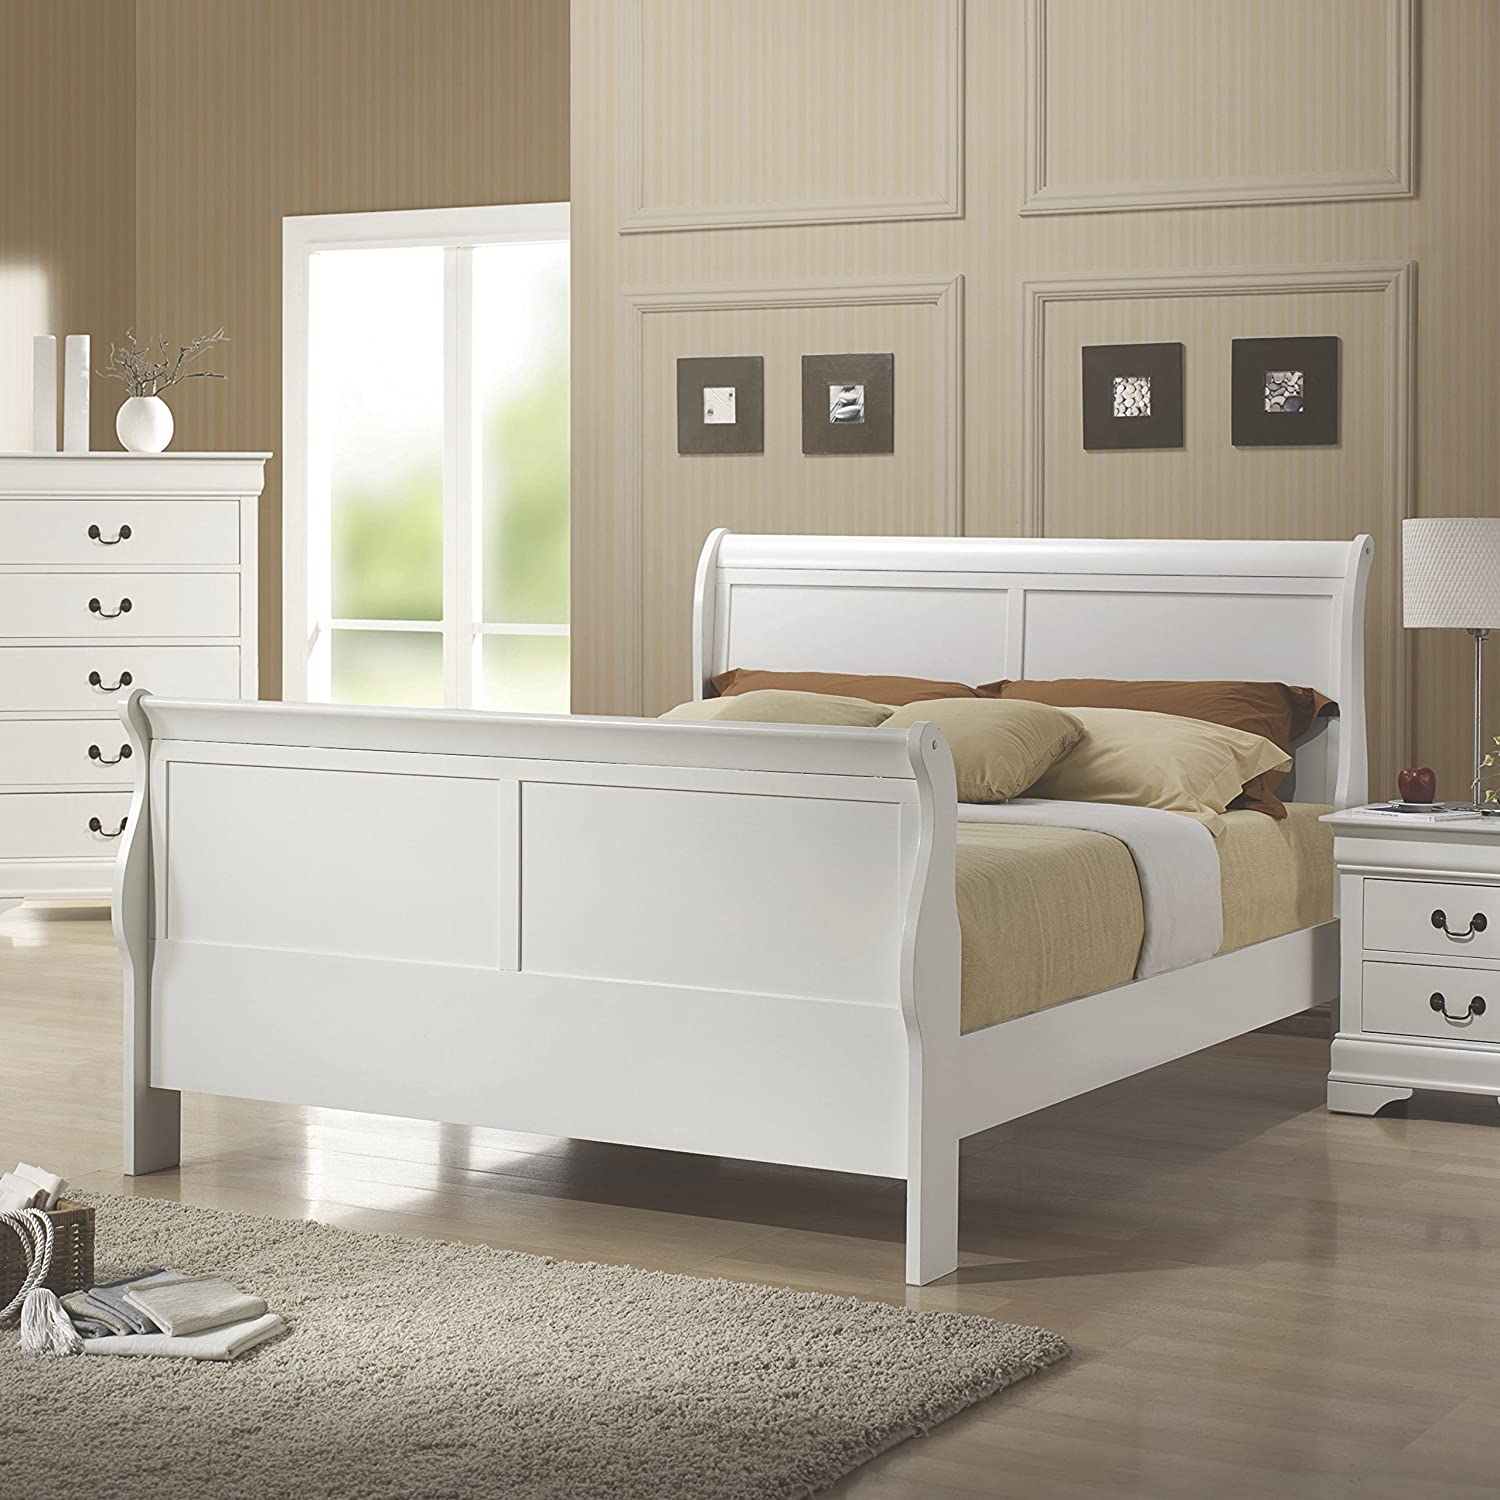 . Coaster Home Furnishings Louis Philippe Queen Sleigh Bed White